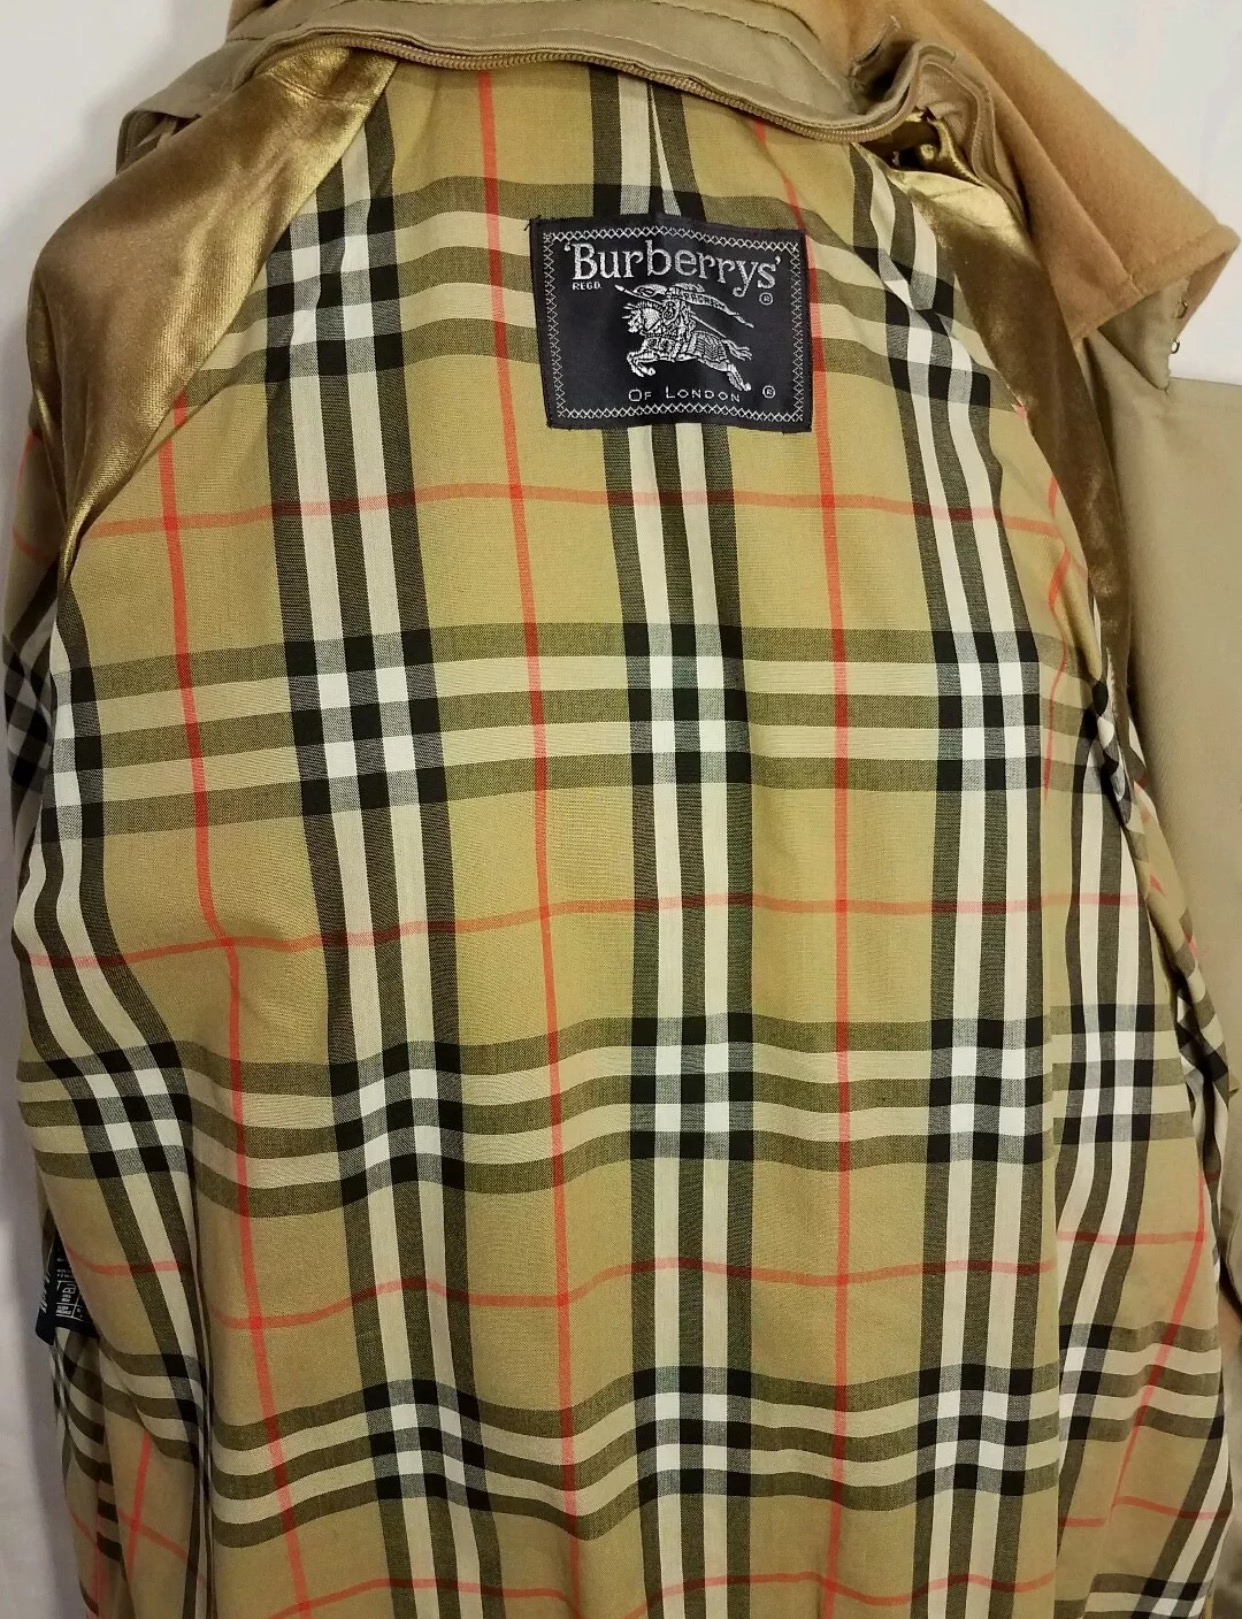 burberrys trench coat fake